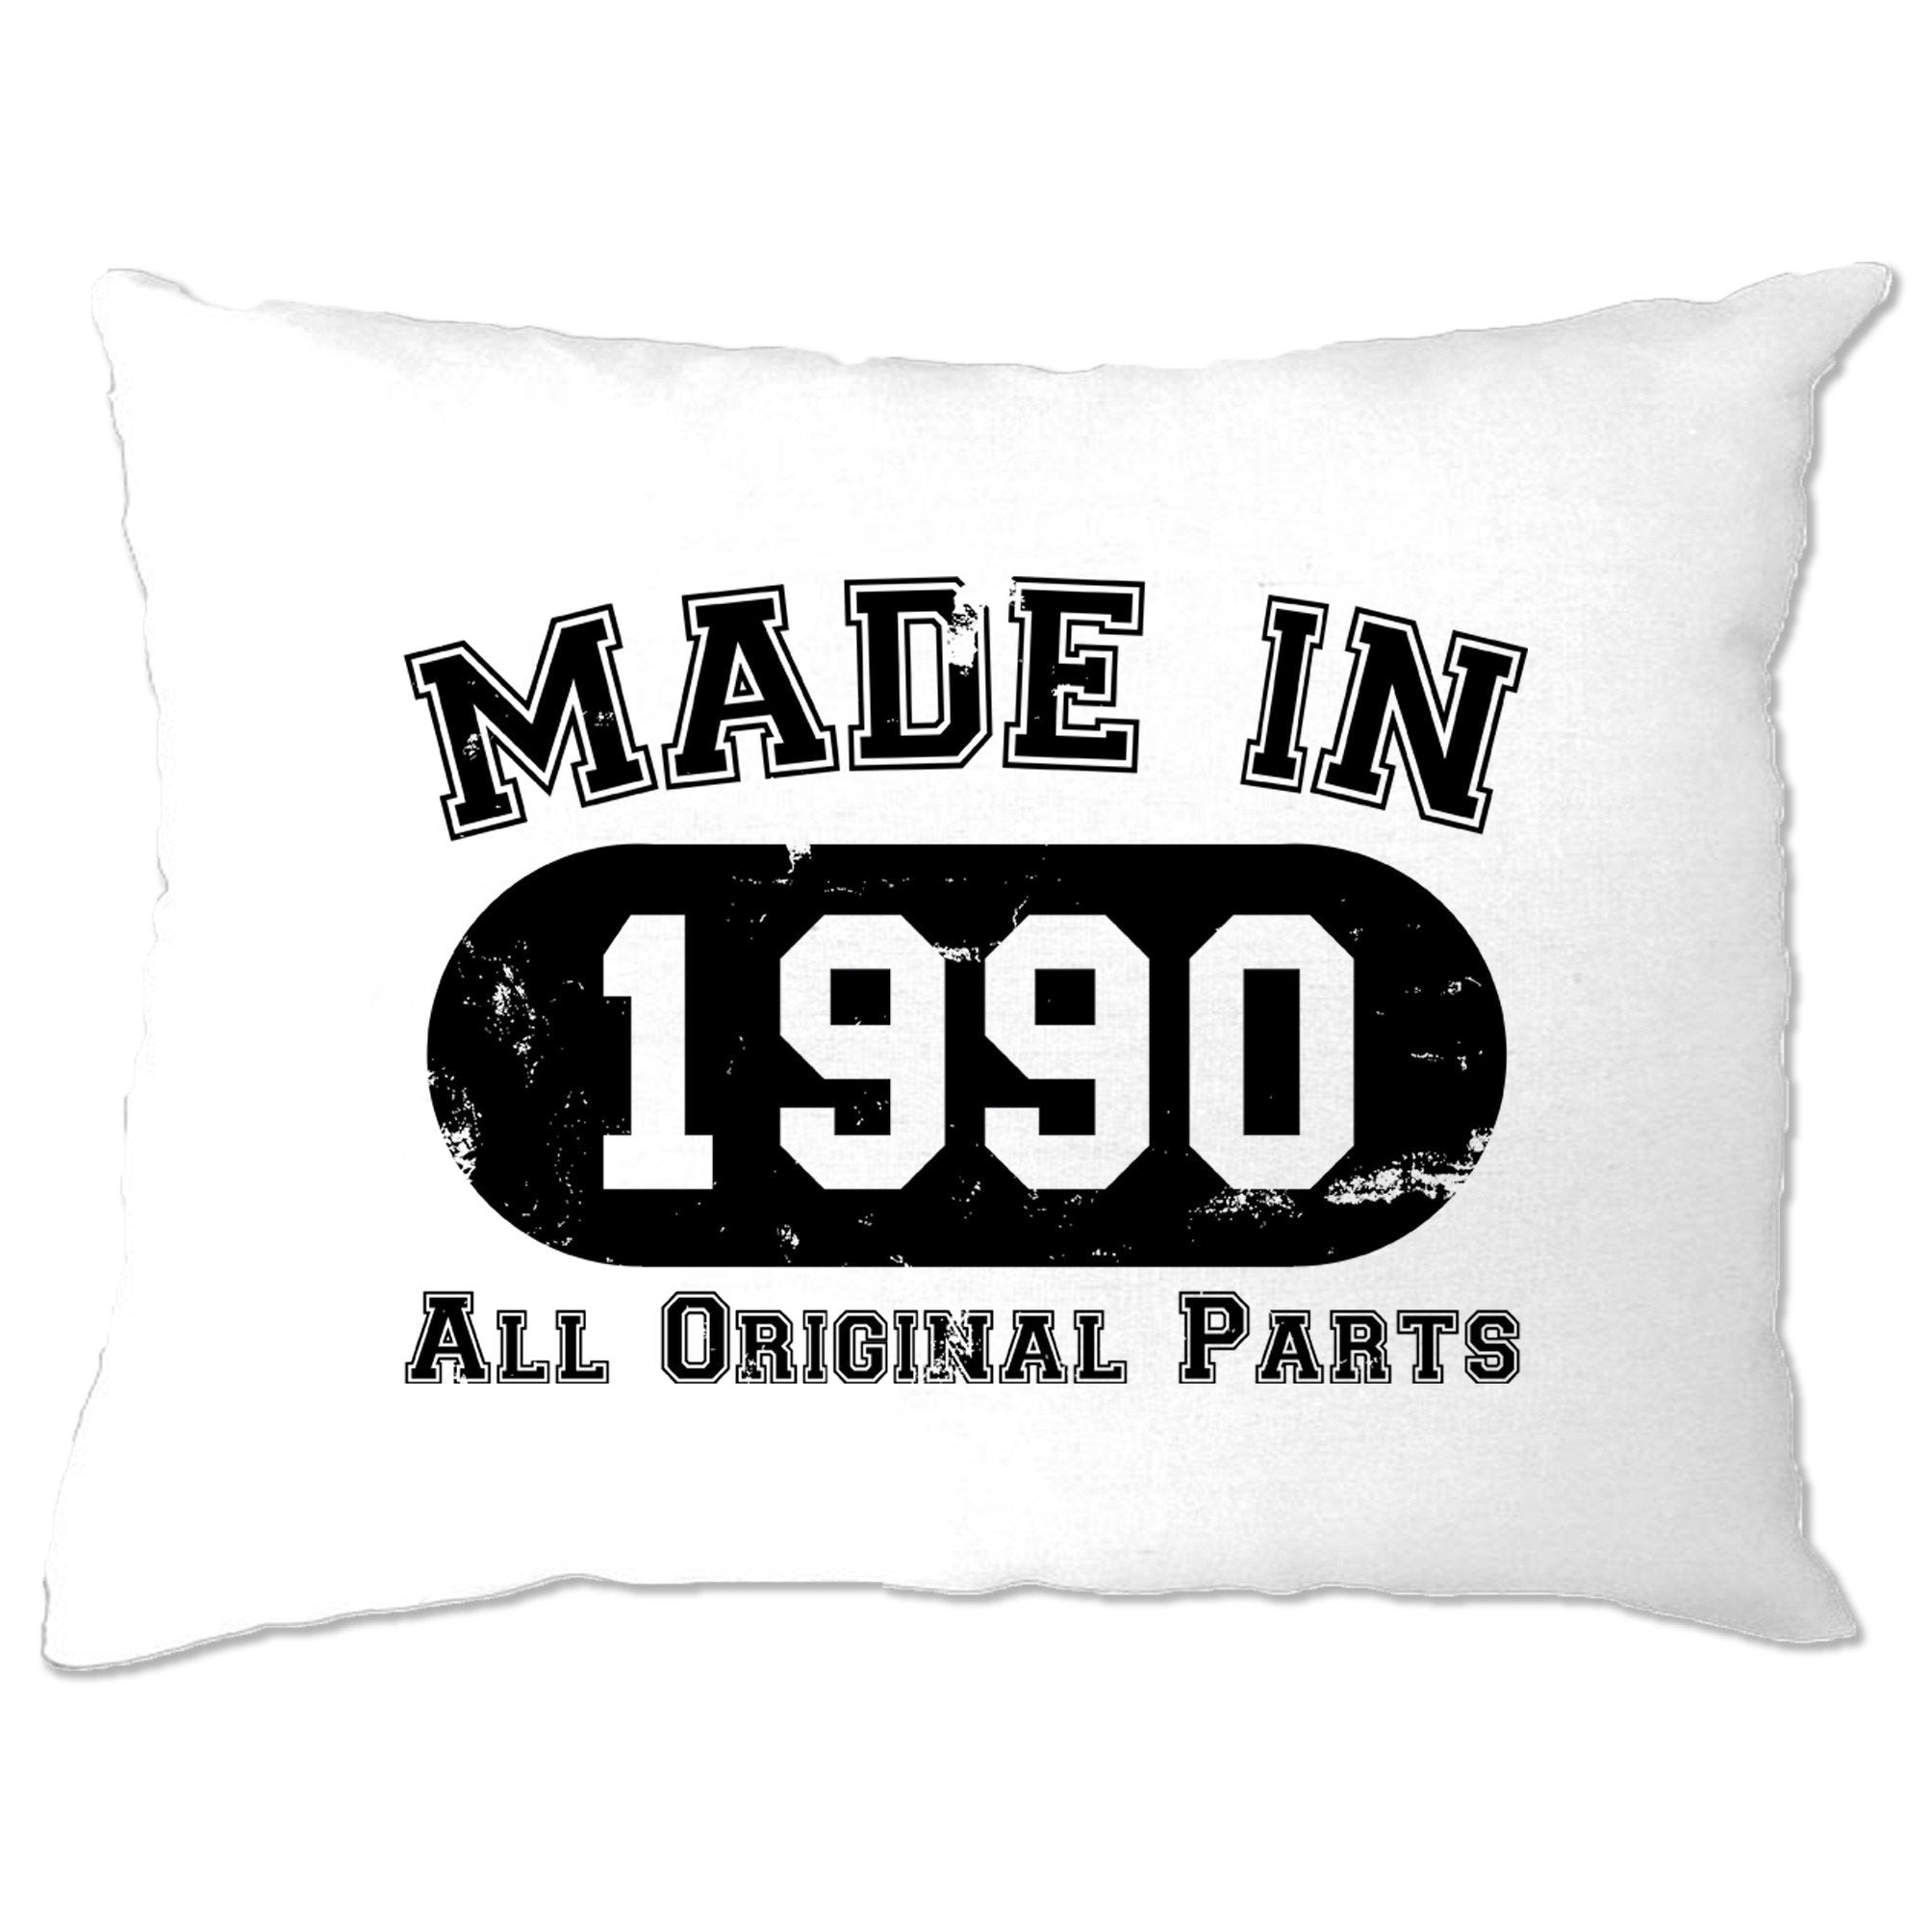 Made in 1990 All Original Parts Pillow Case [Distressed]